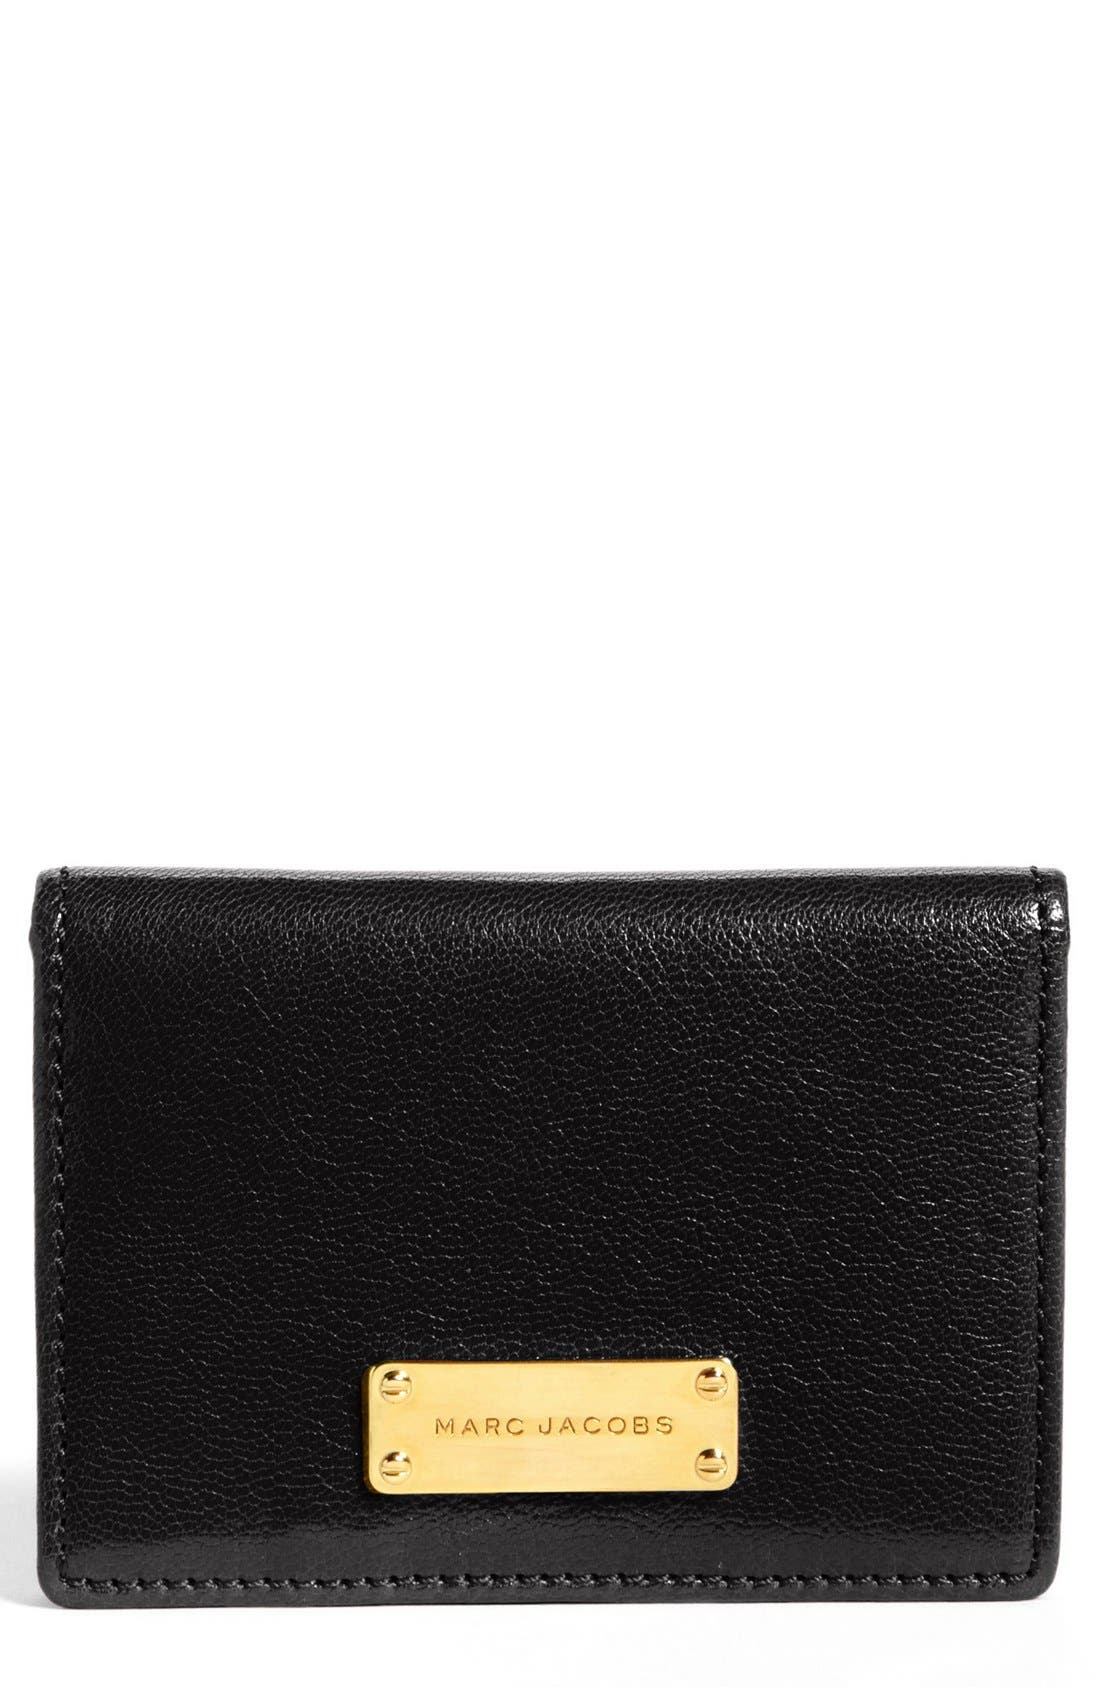 Main Image - MARC JACOBS 'Wellington' Leather Card Case